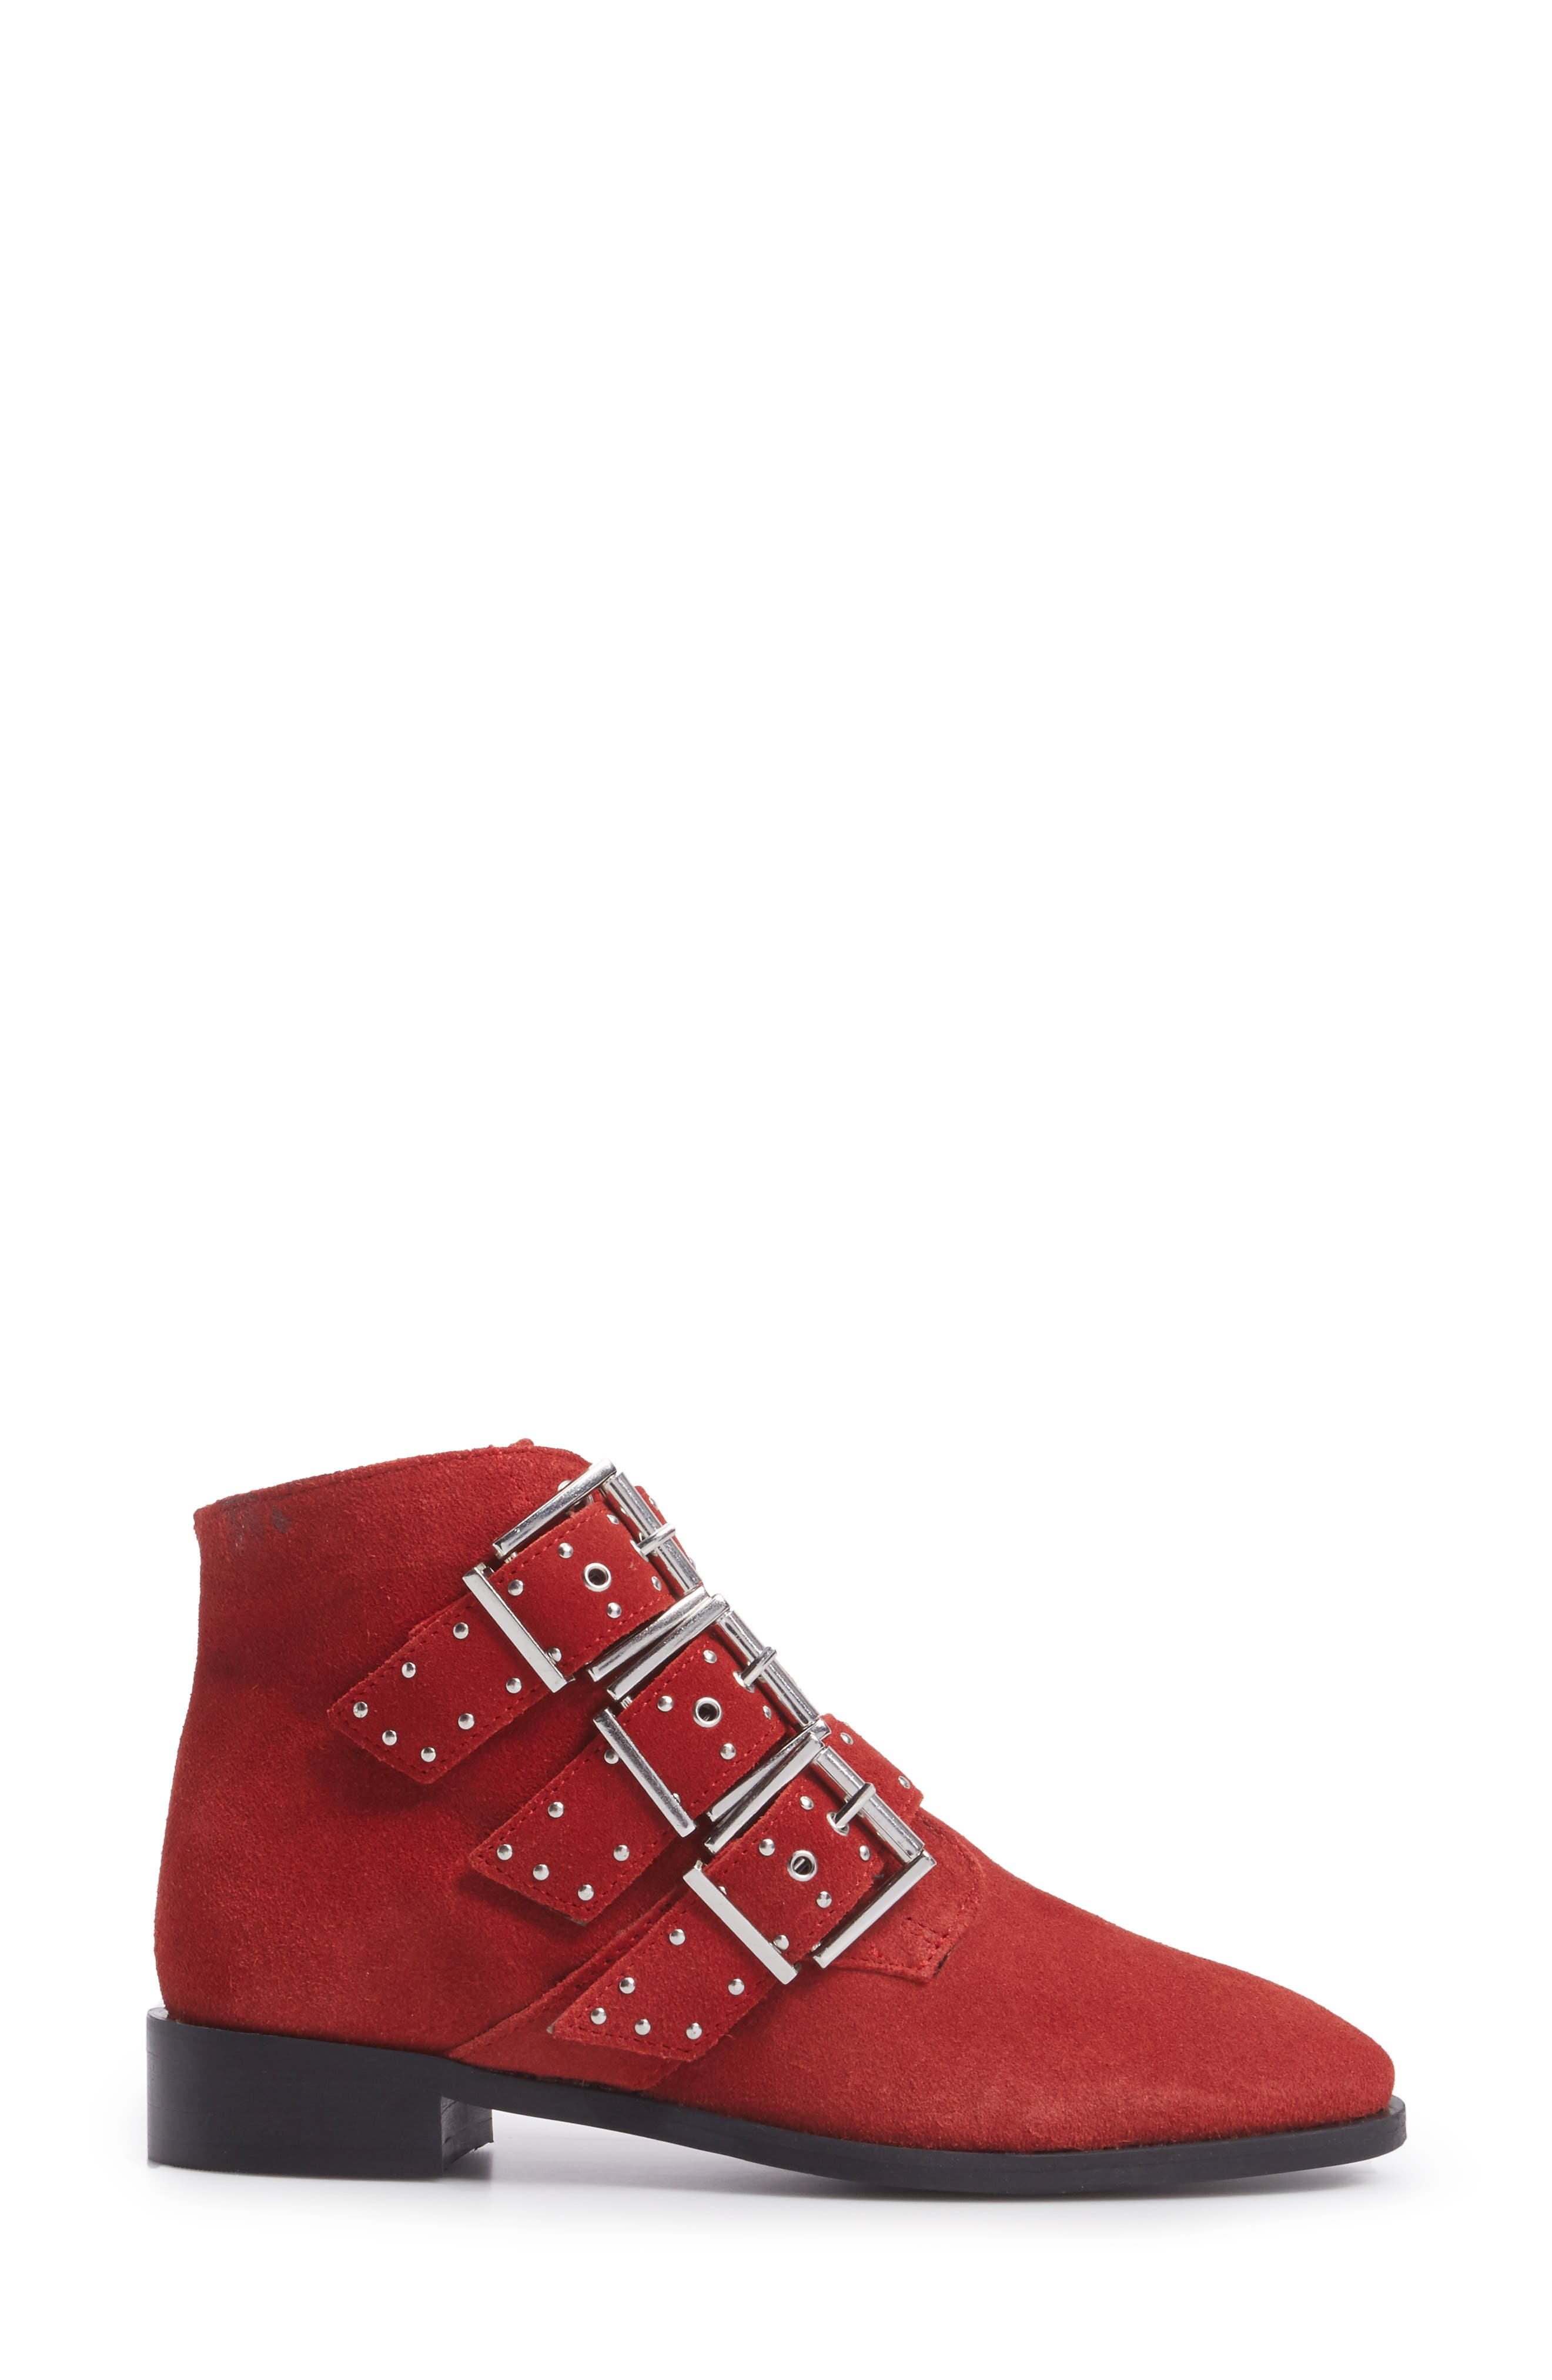 Krown Studded Bootie,                             Alternate thumbnail 6, color,